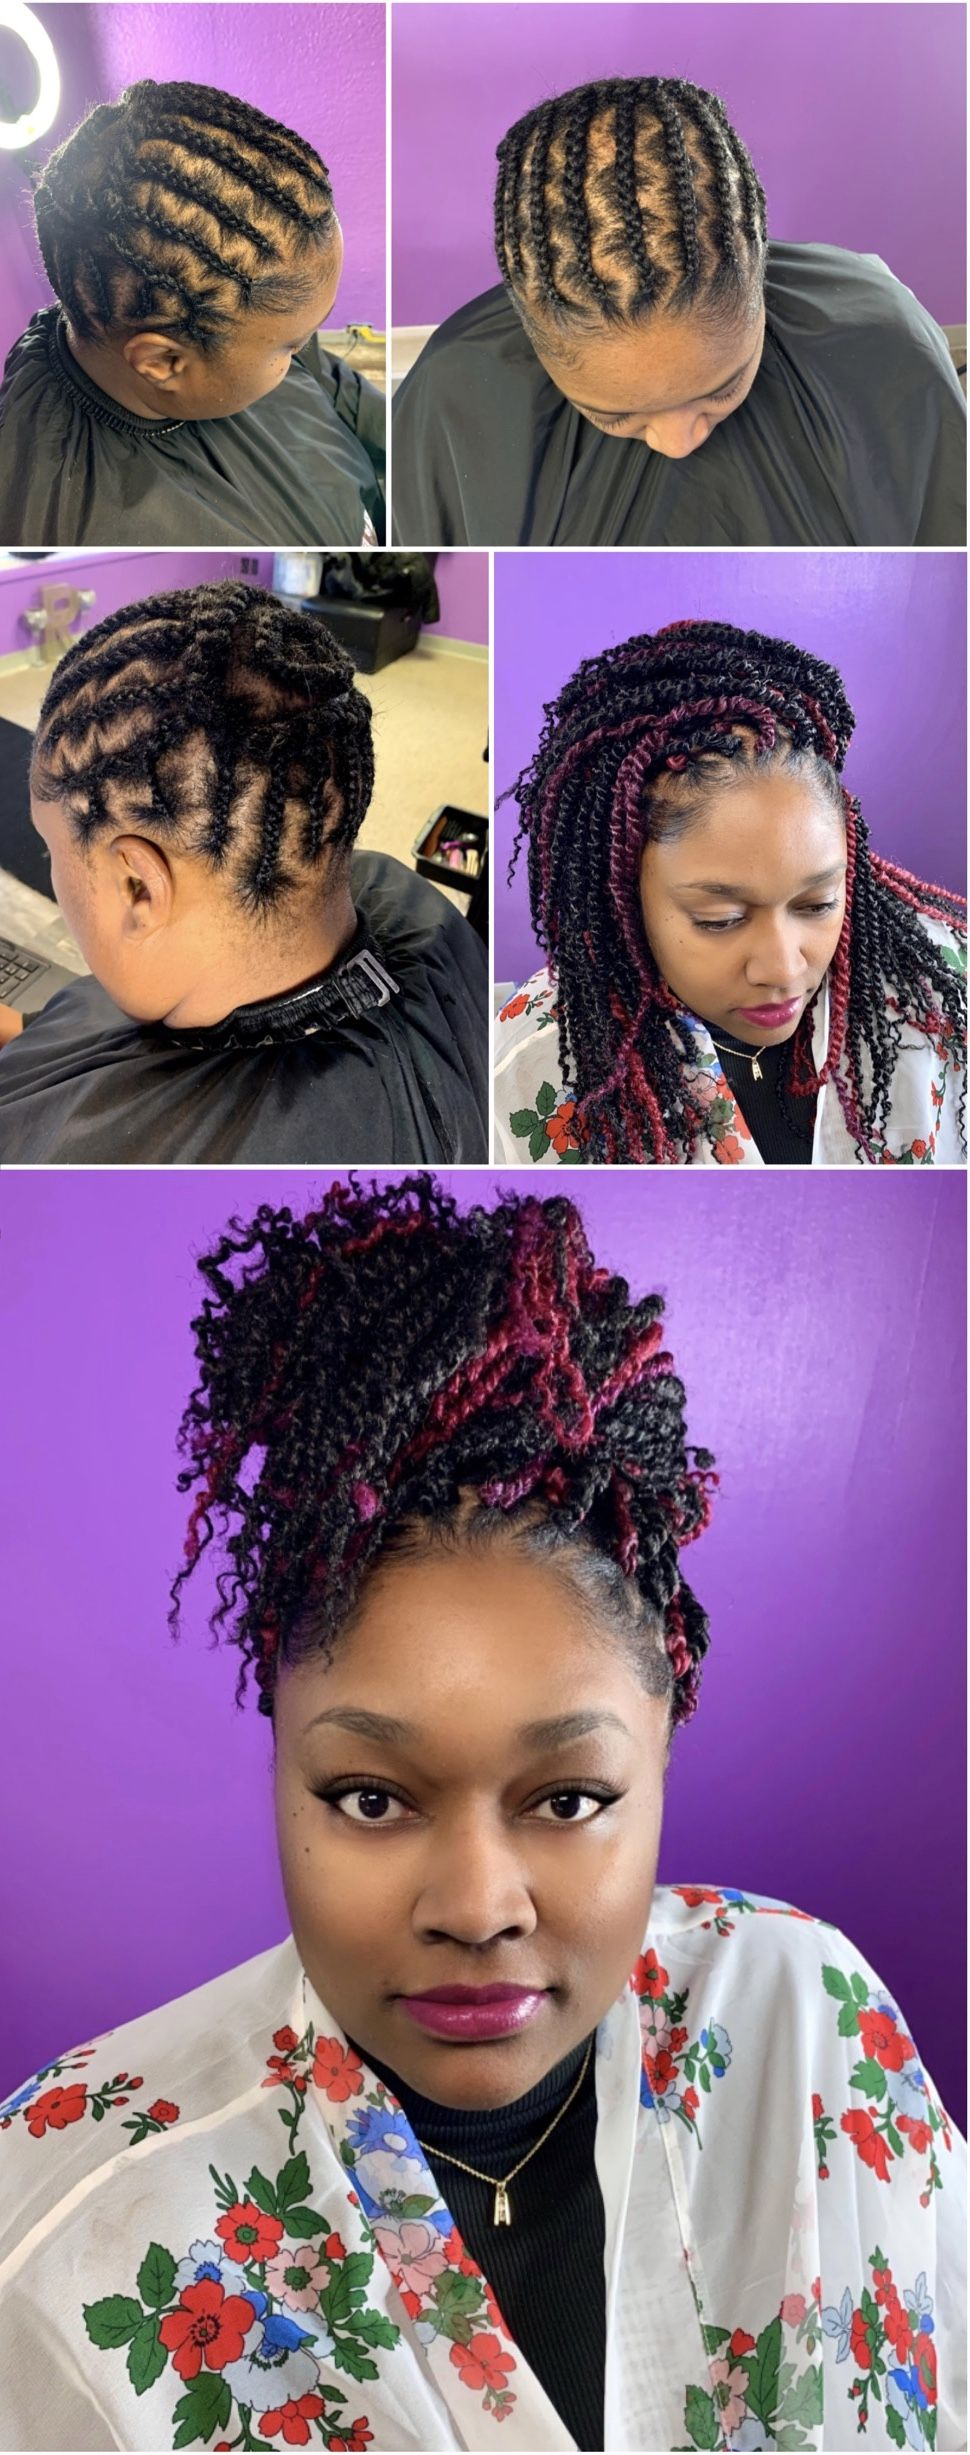 Mayde Passiontwists Braided Foundation For Ponytail Crochet Braid Pattern Beauty Can Braid Crotchet Braids